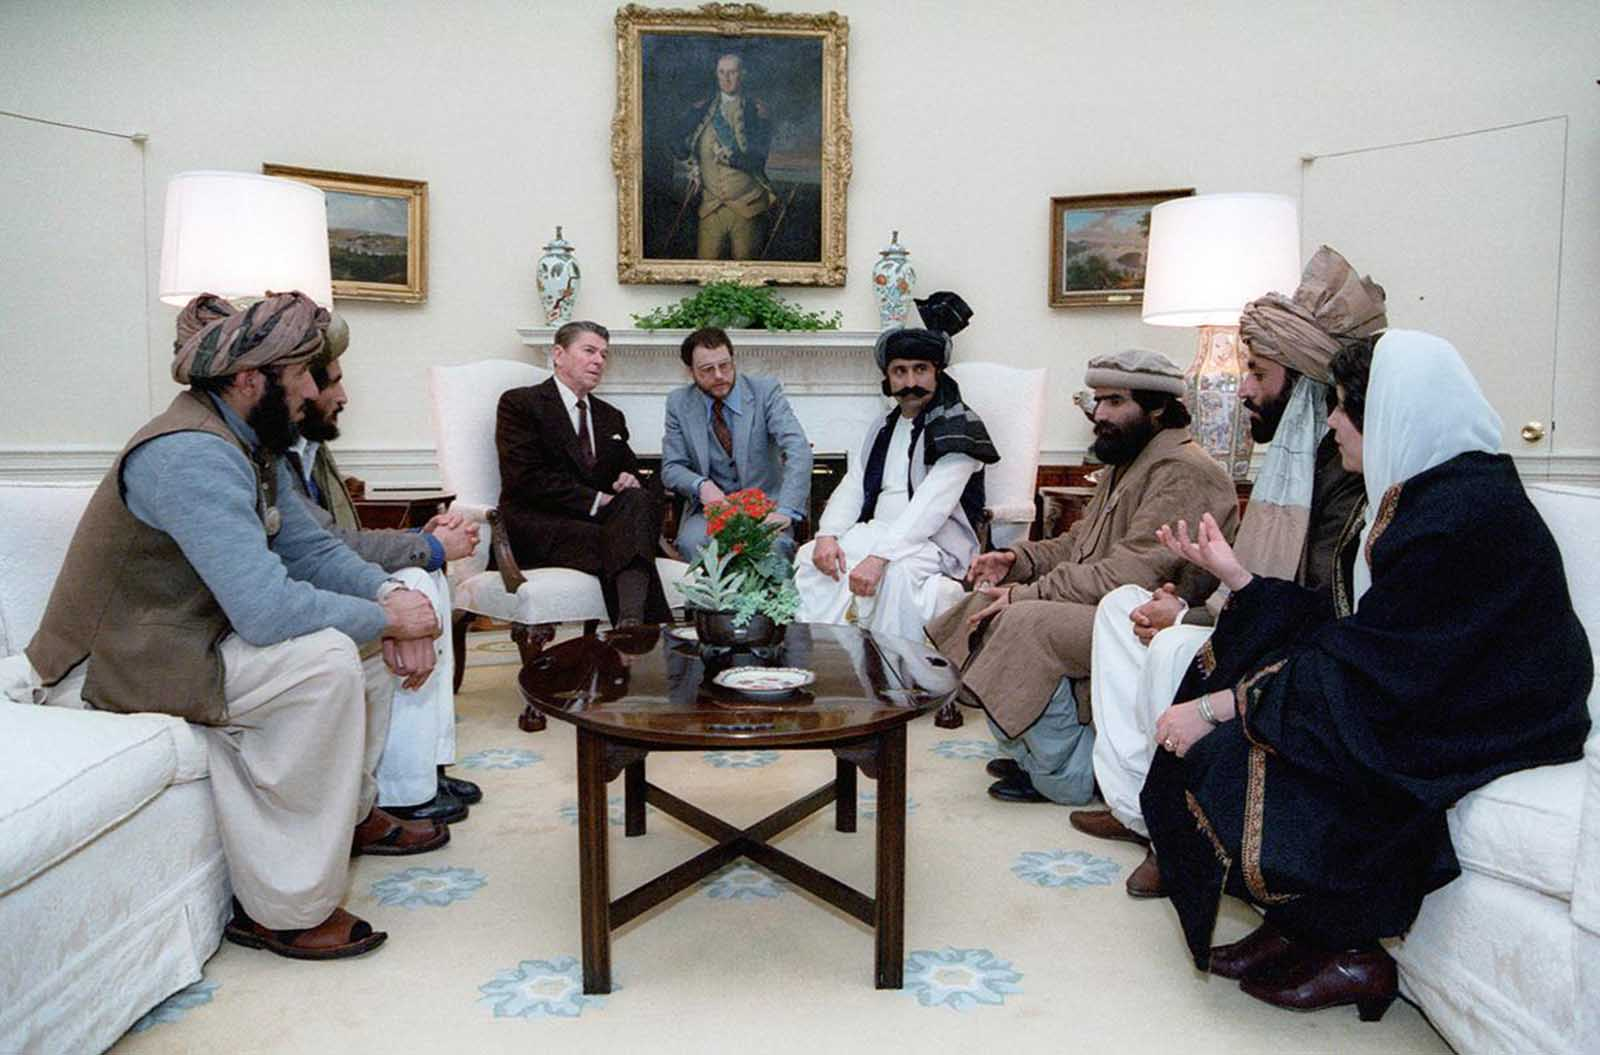 U.S. President Ronald Reagan meets with a group of Afghan freedom fighters to discuss Soviet atrocities in Afghanistan, especially the September 1982 massacre of 105 Afghan villagers in Lowgar Province.